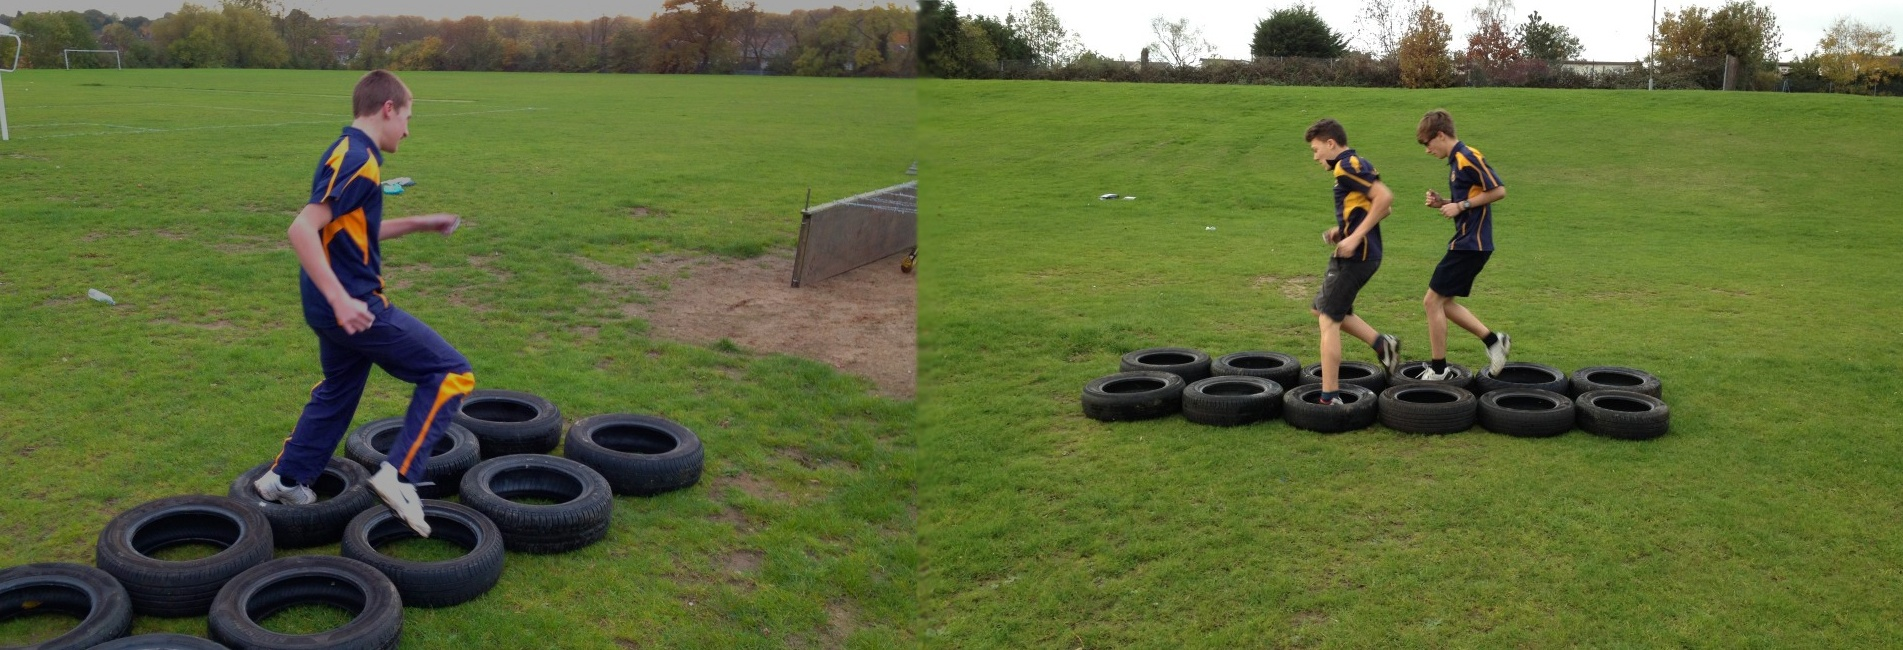 Kids Participating In Assault Course